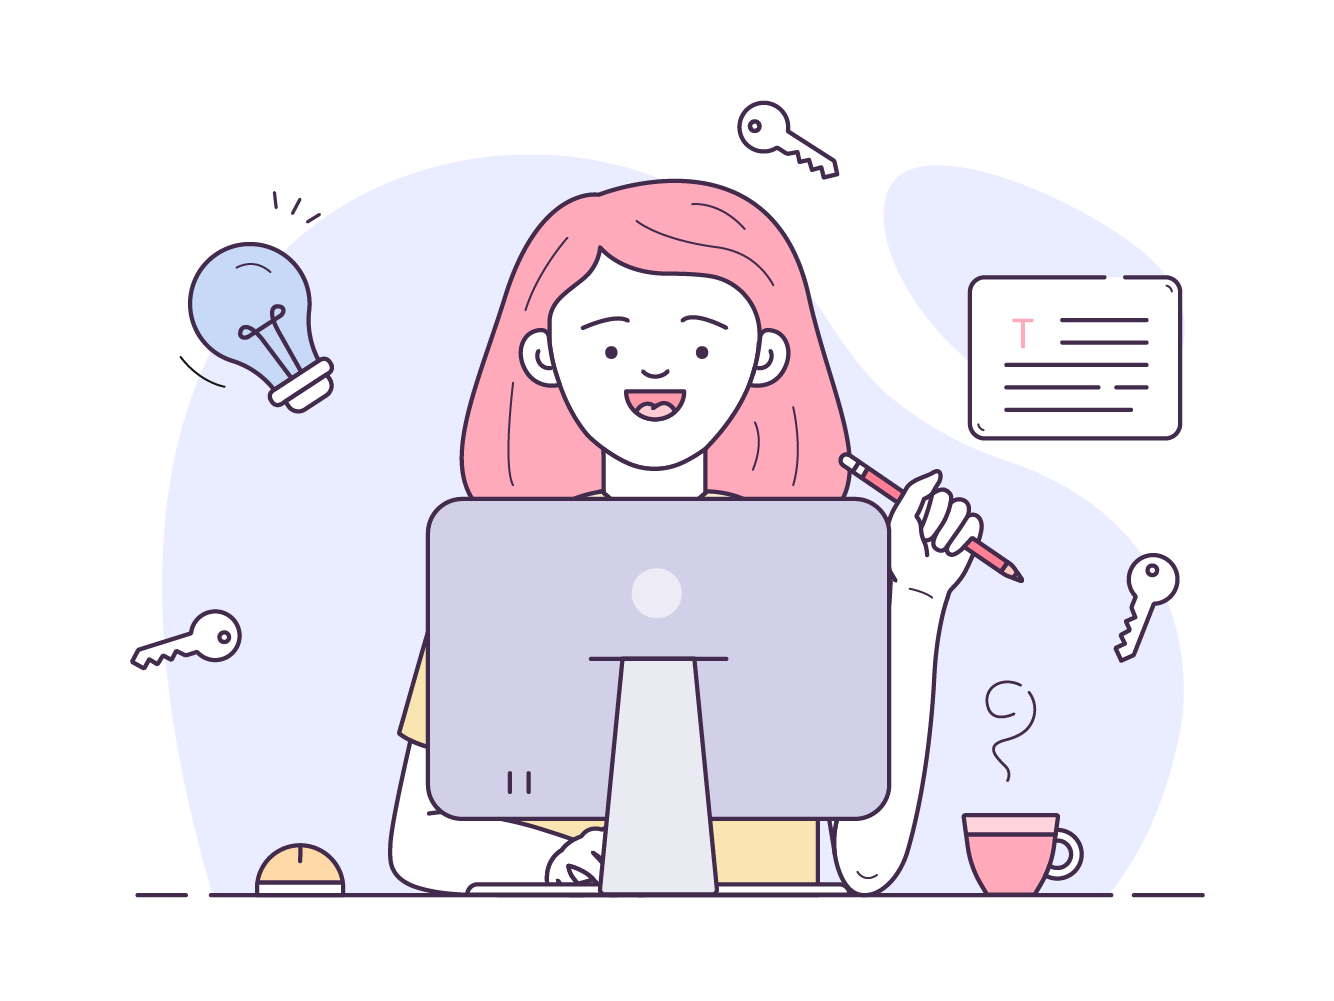 An illustration of a writer sitting in front of a computer